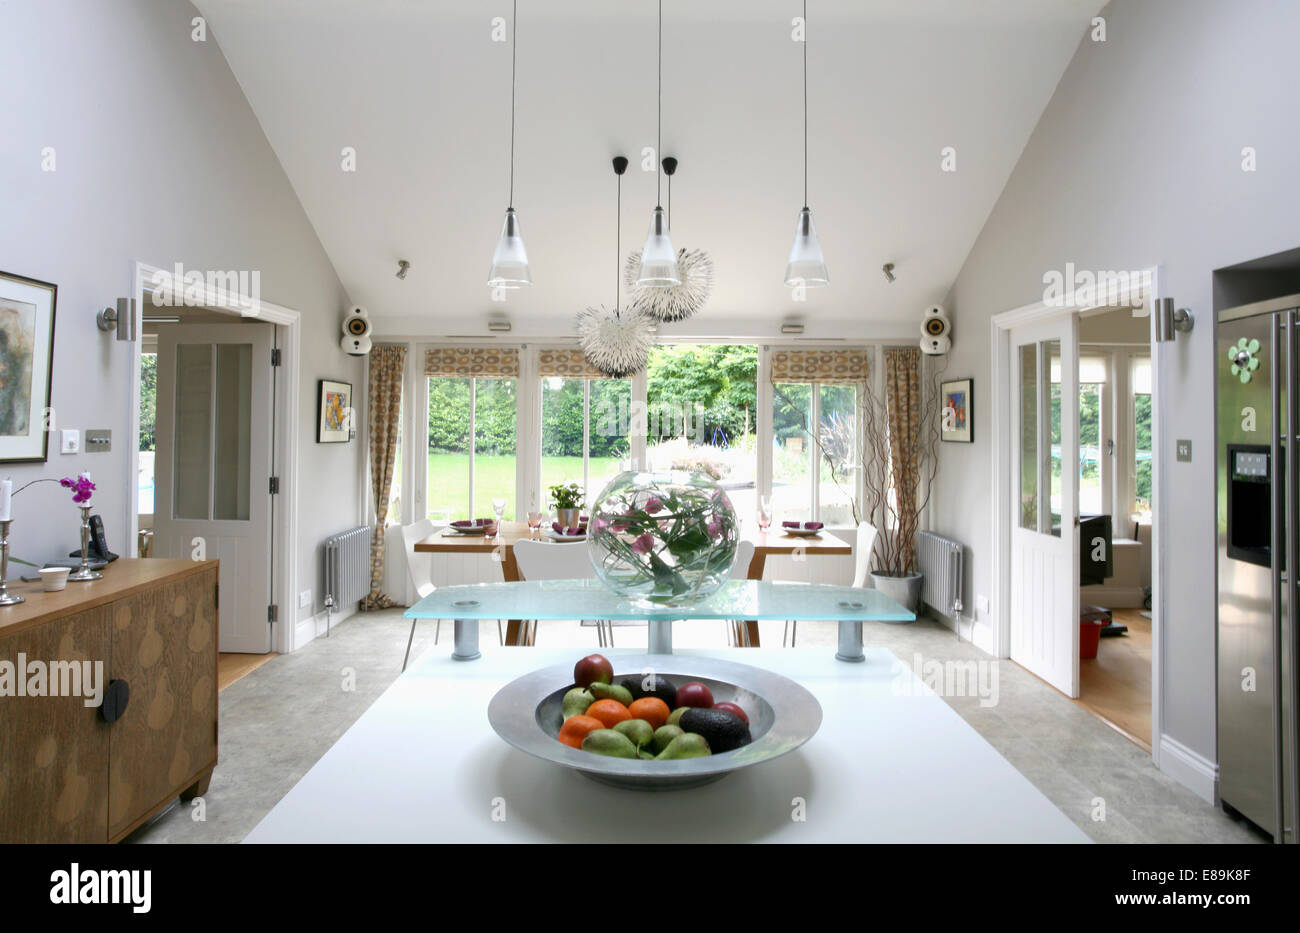 Large Kitchen Dining Room Large Openplan Kitchen Dining Room With Glass Fronted Cupboard